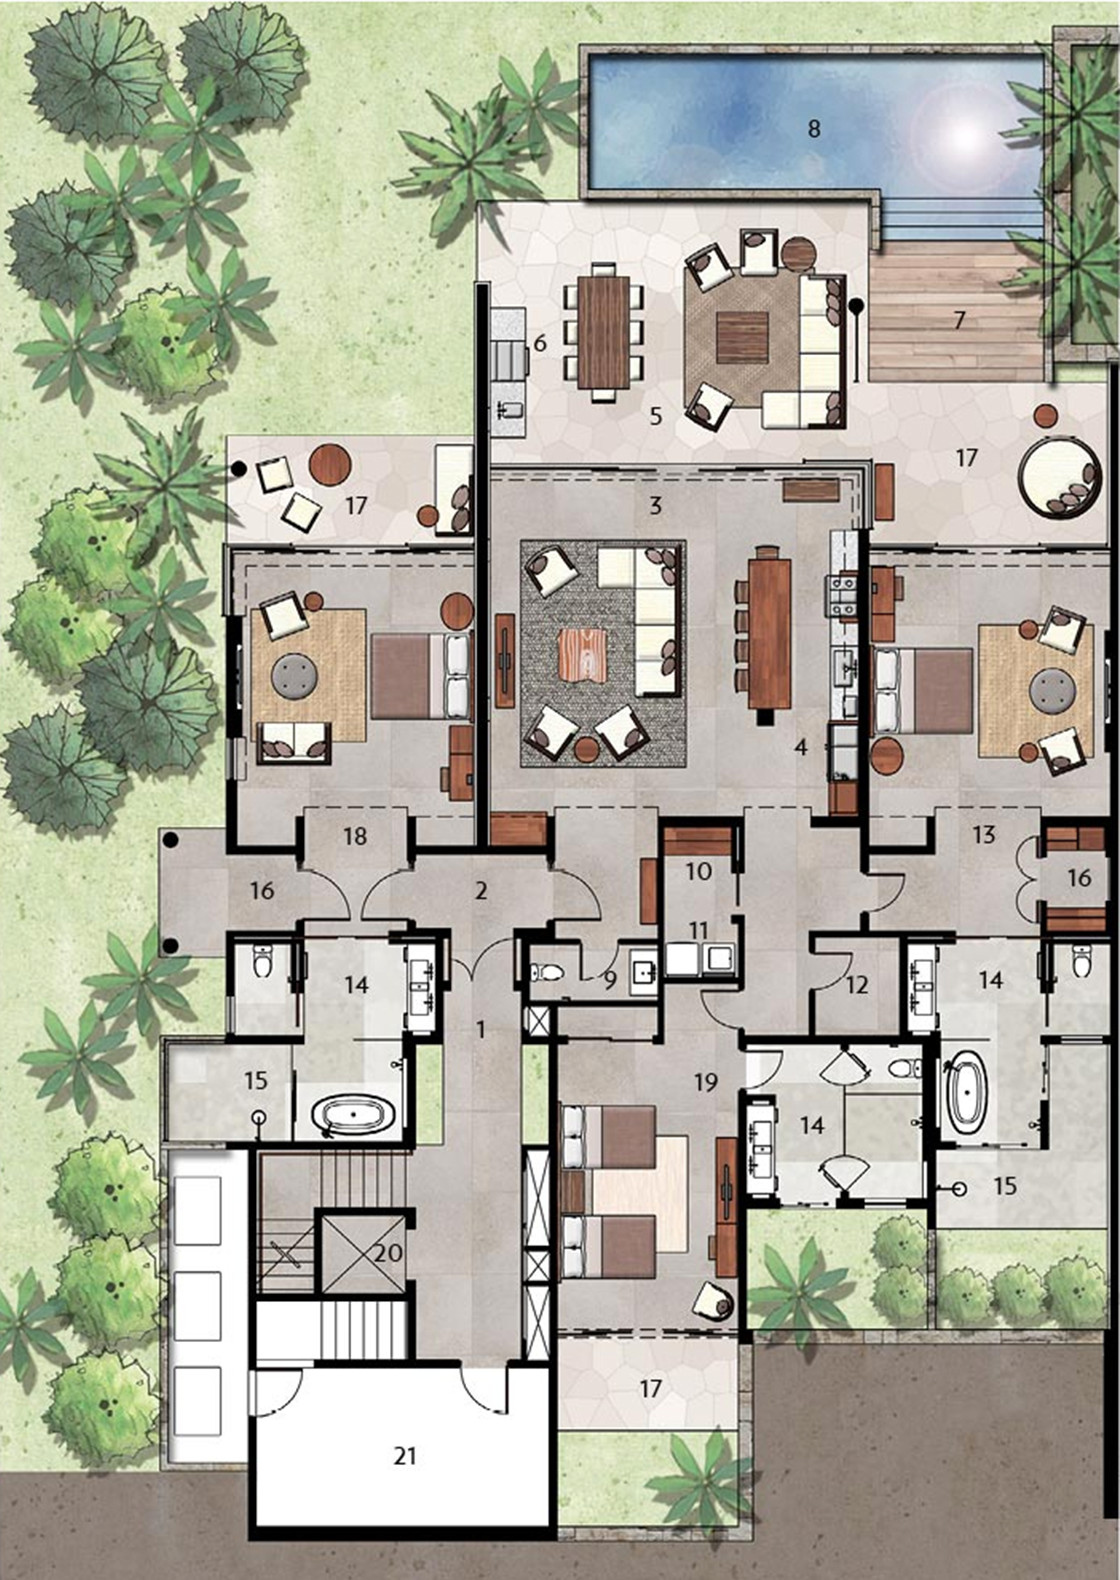 Los cabos luxury villas floor plans chileno bay resort for Plan villa r 2